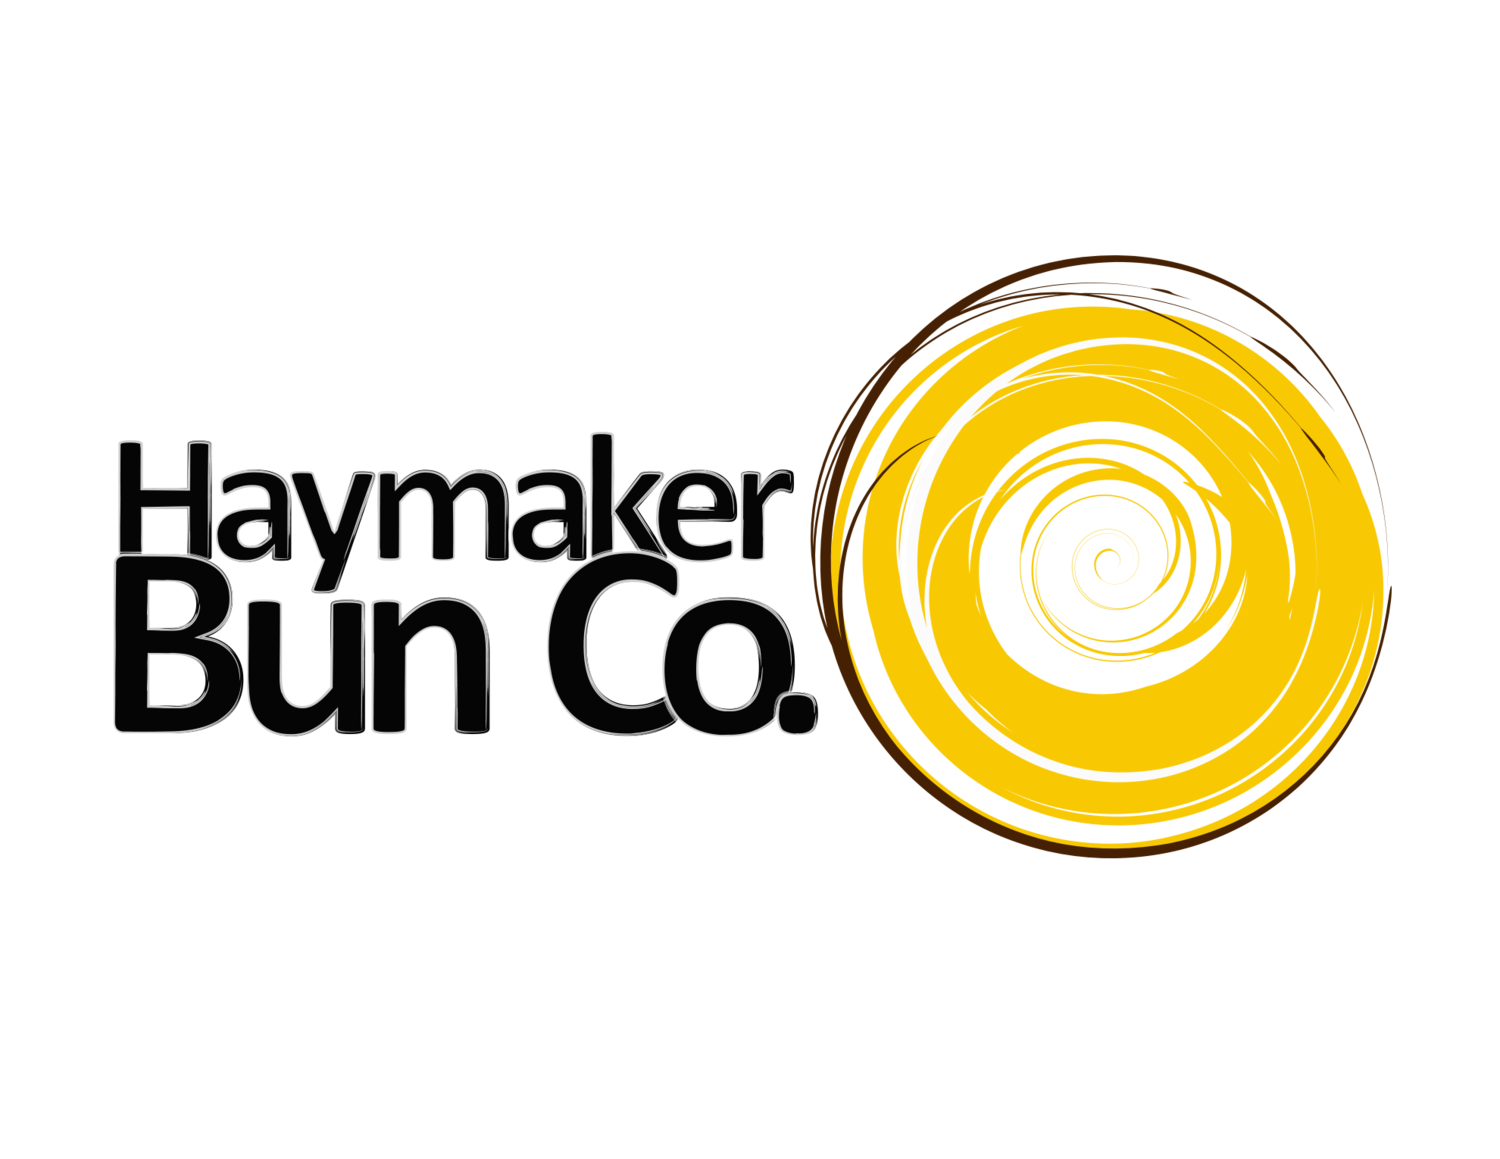 Haymaker Bun Co.